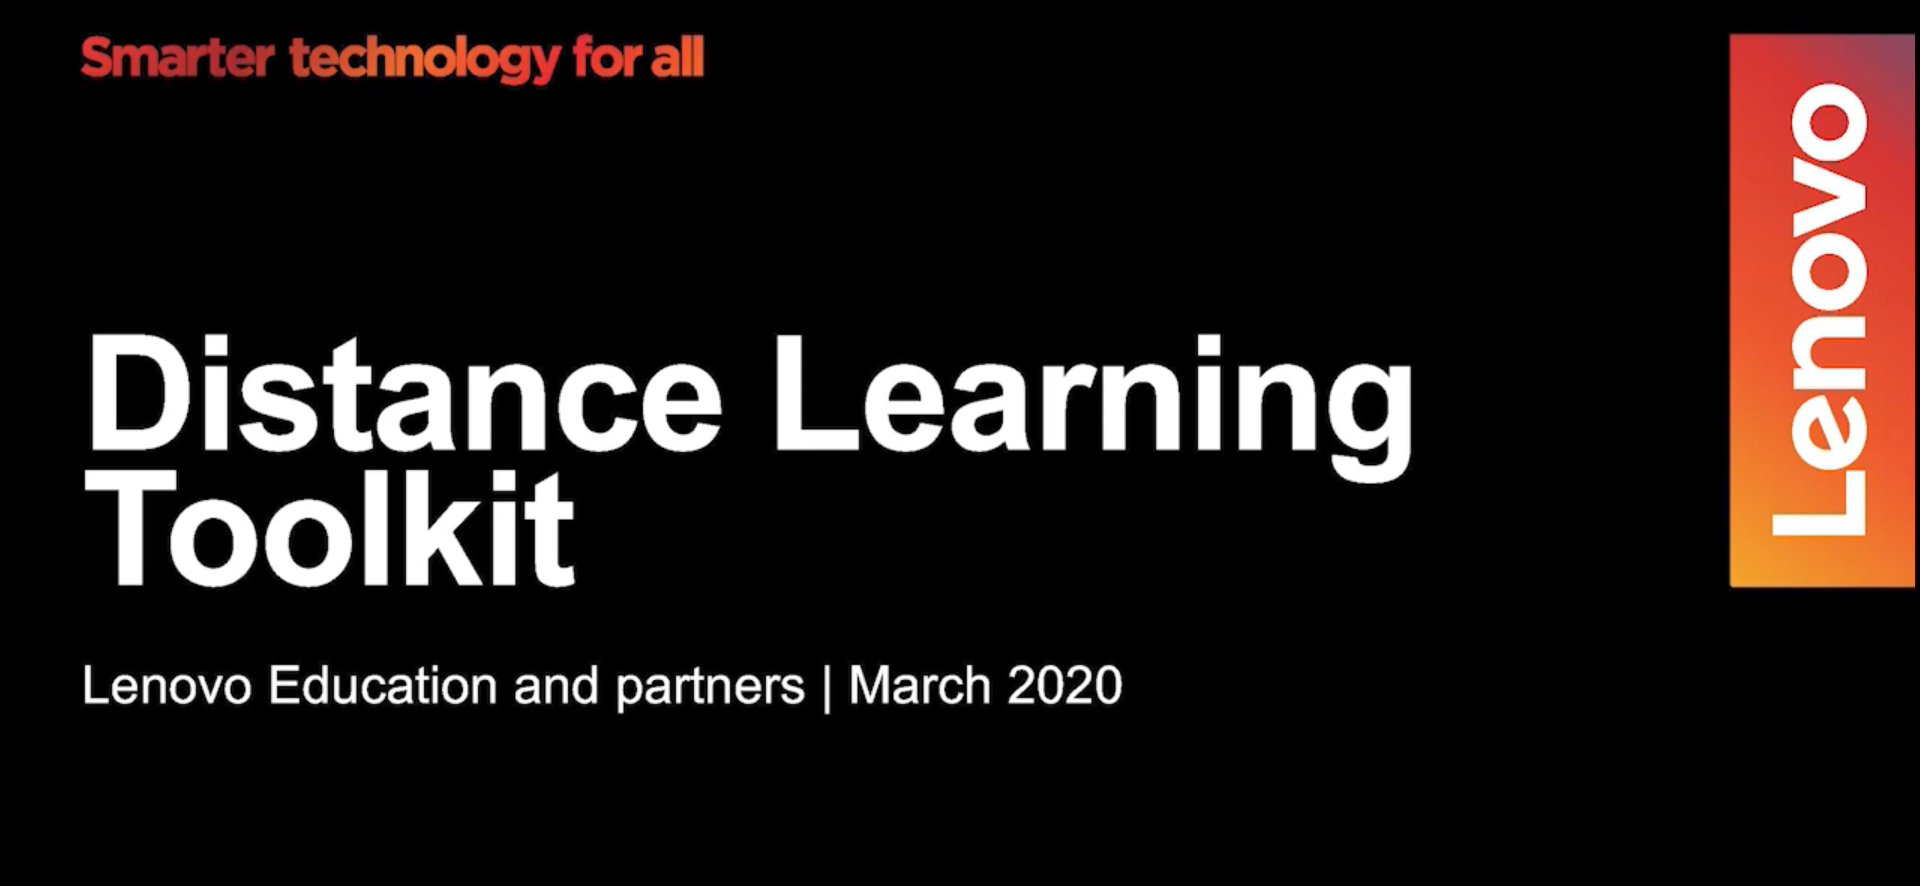 Distance Learning Toolkit from Lenovo